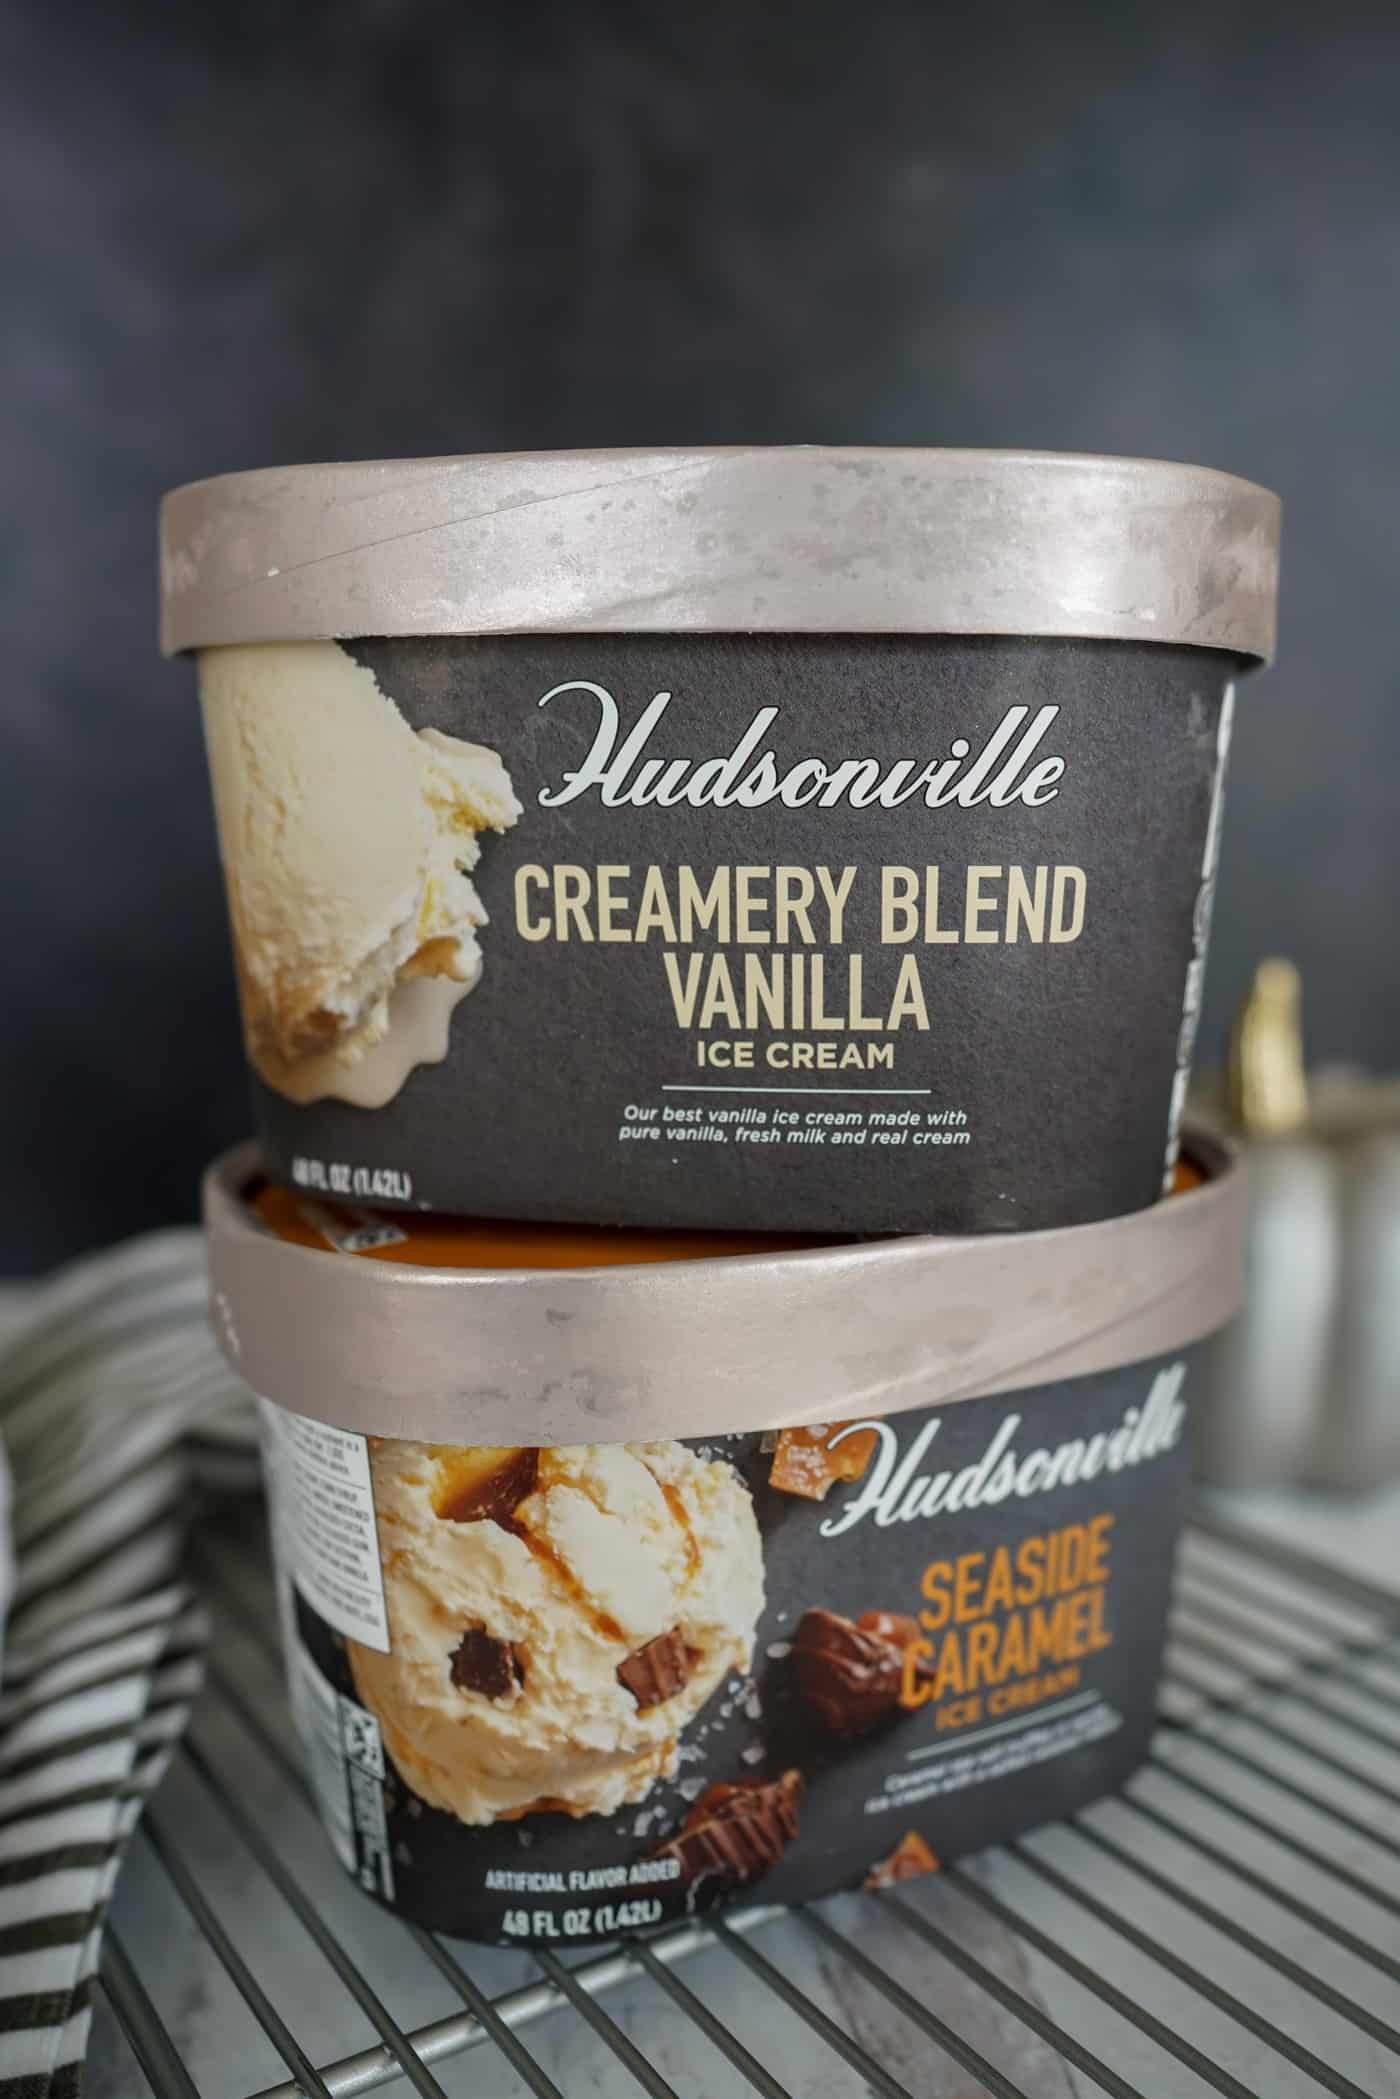 A stack of Hudsonville Creamy Vanilla Blend and Seaside Caramel ice cream